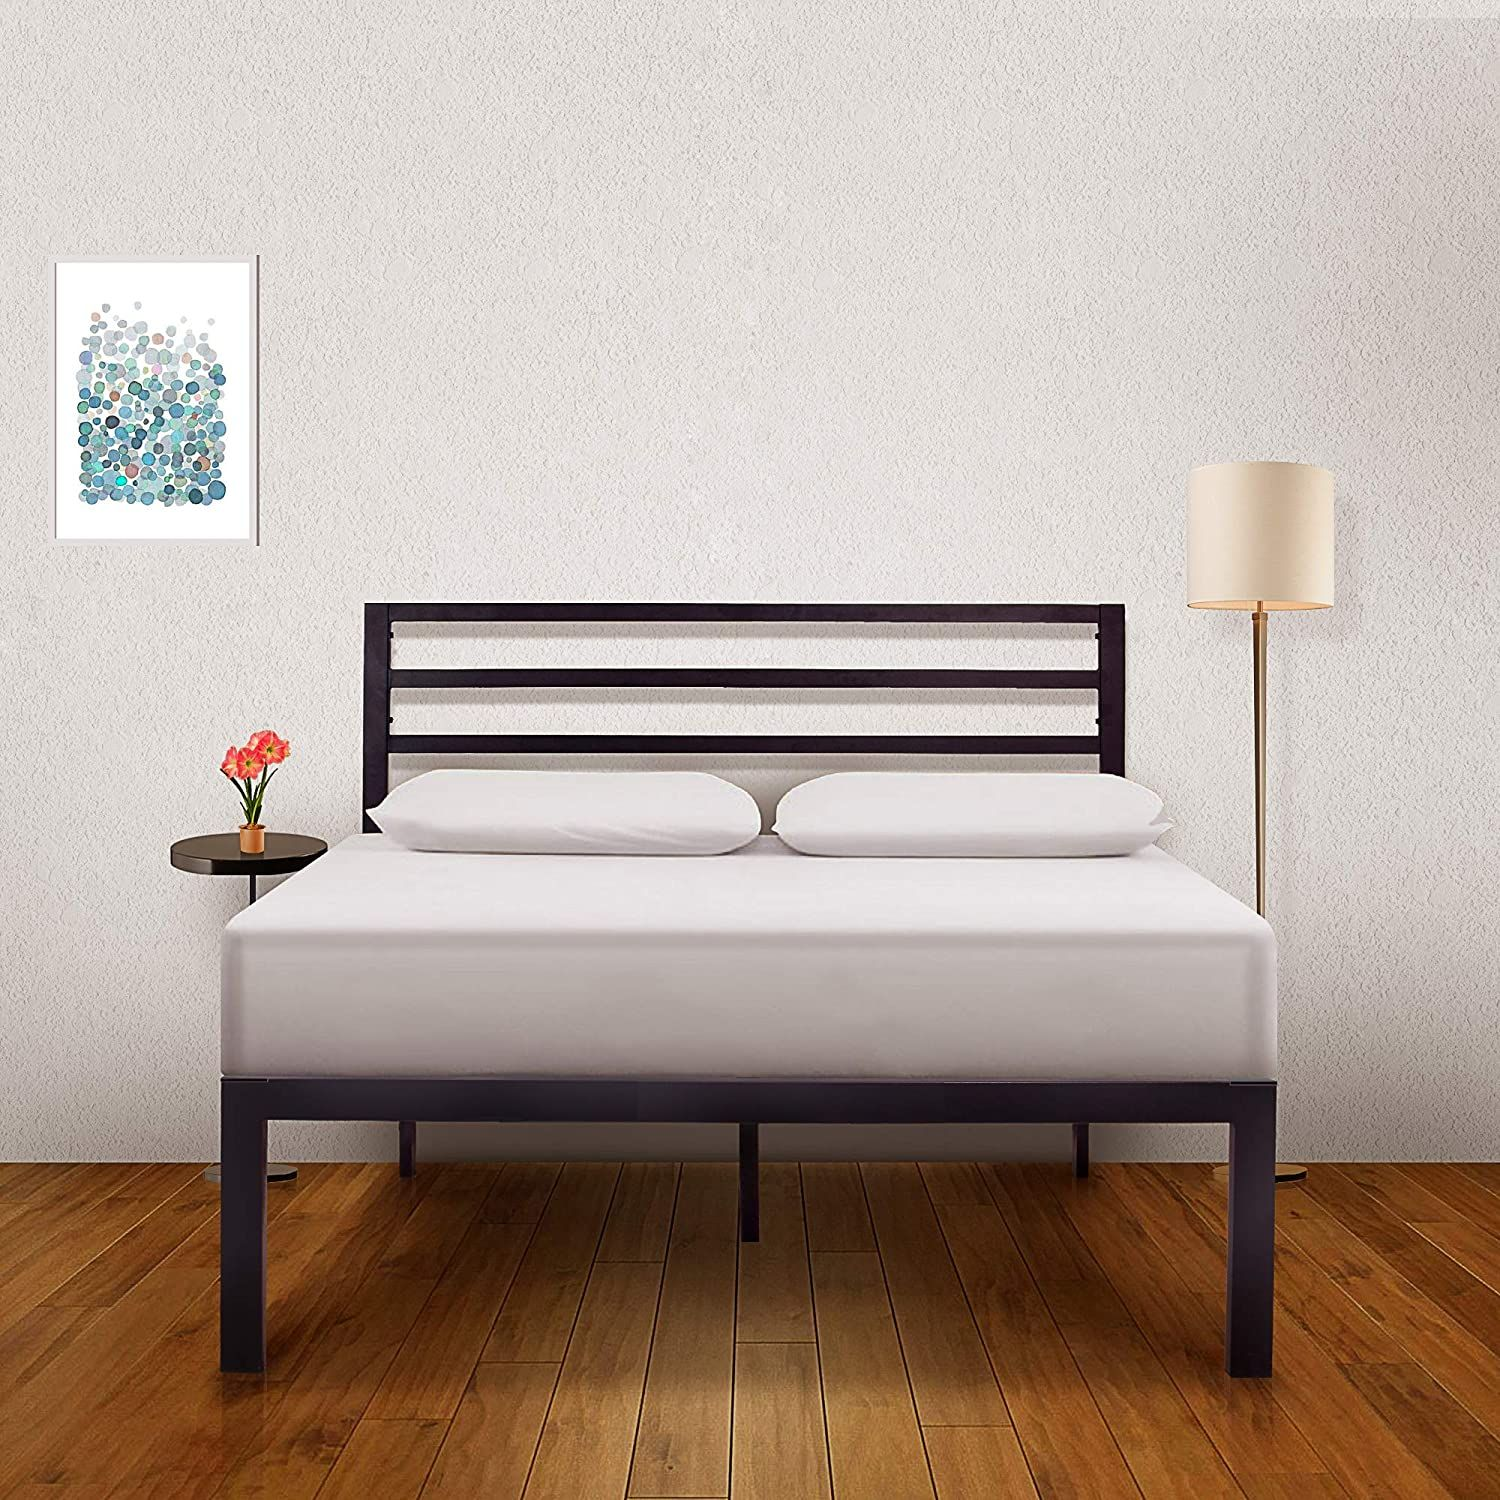 AMBEE21 Bed Frame with Headboard 14 inch King Bed